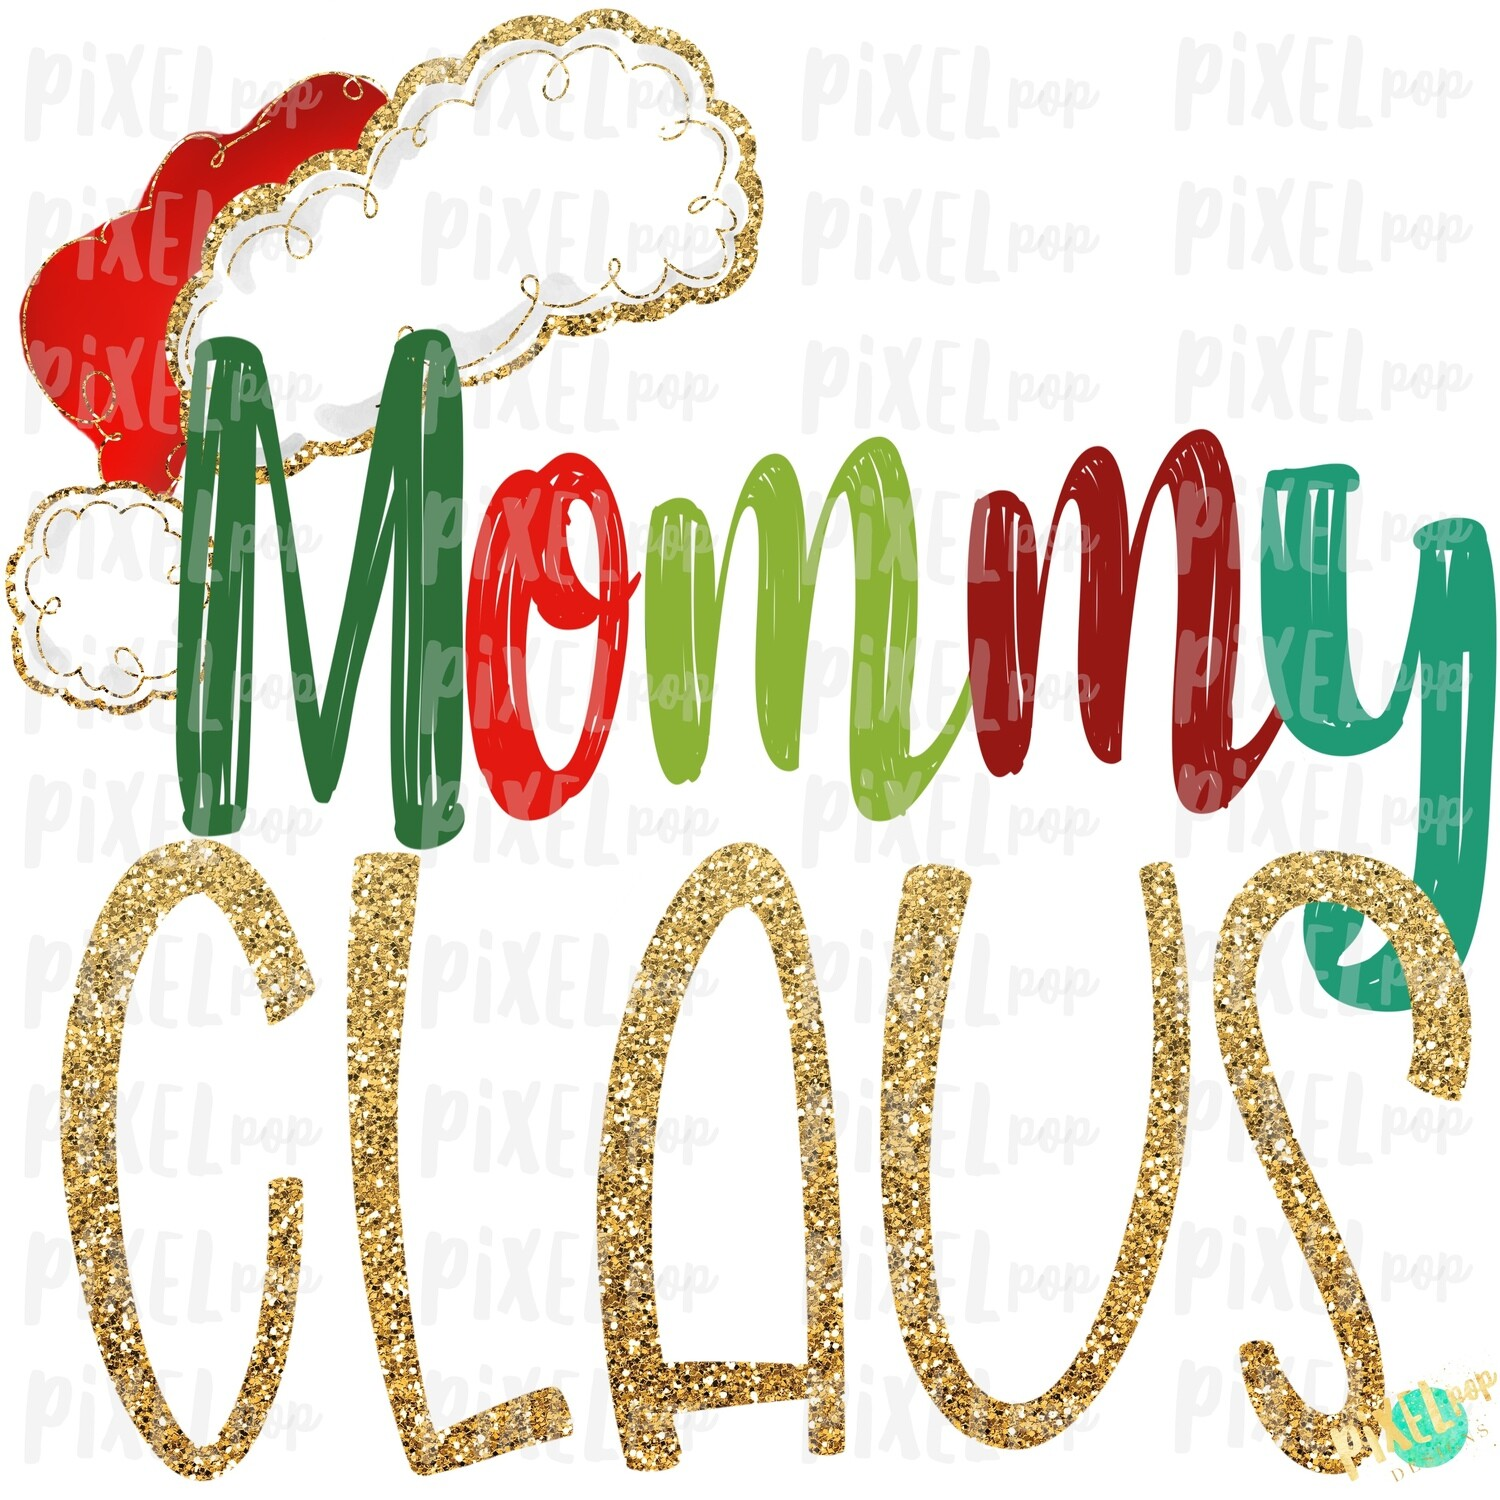 Mommy Claus Santa Hat Digital Watercolor Sublimation PNG Art | Drawn Design | Sublimation PNG | Digital Download | Printable Artwork | Art